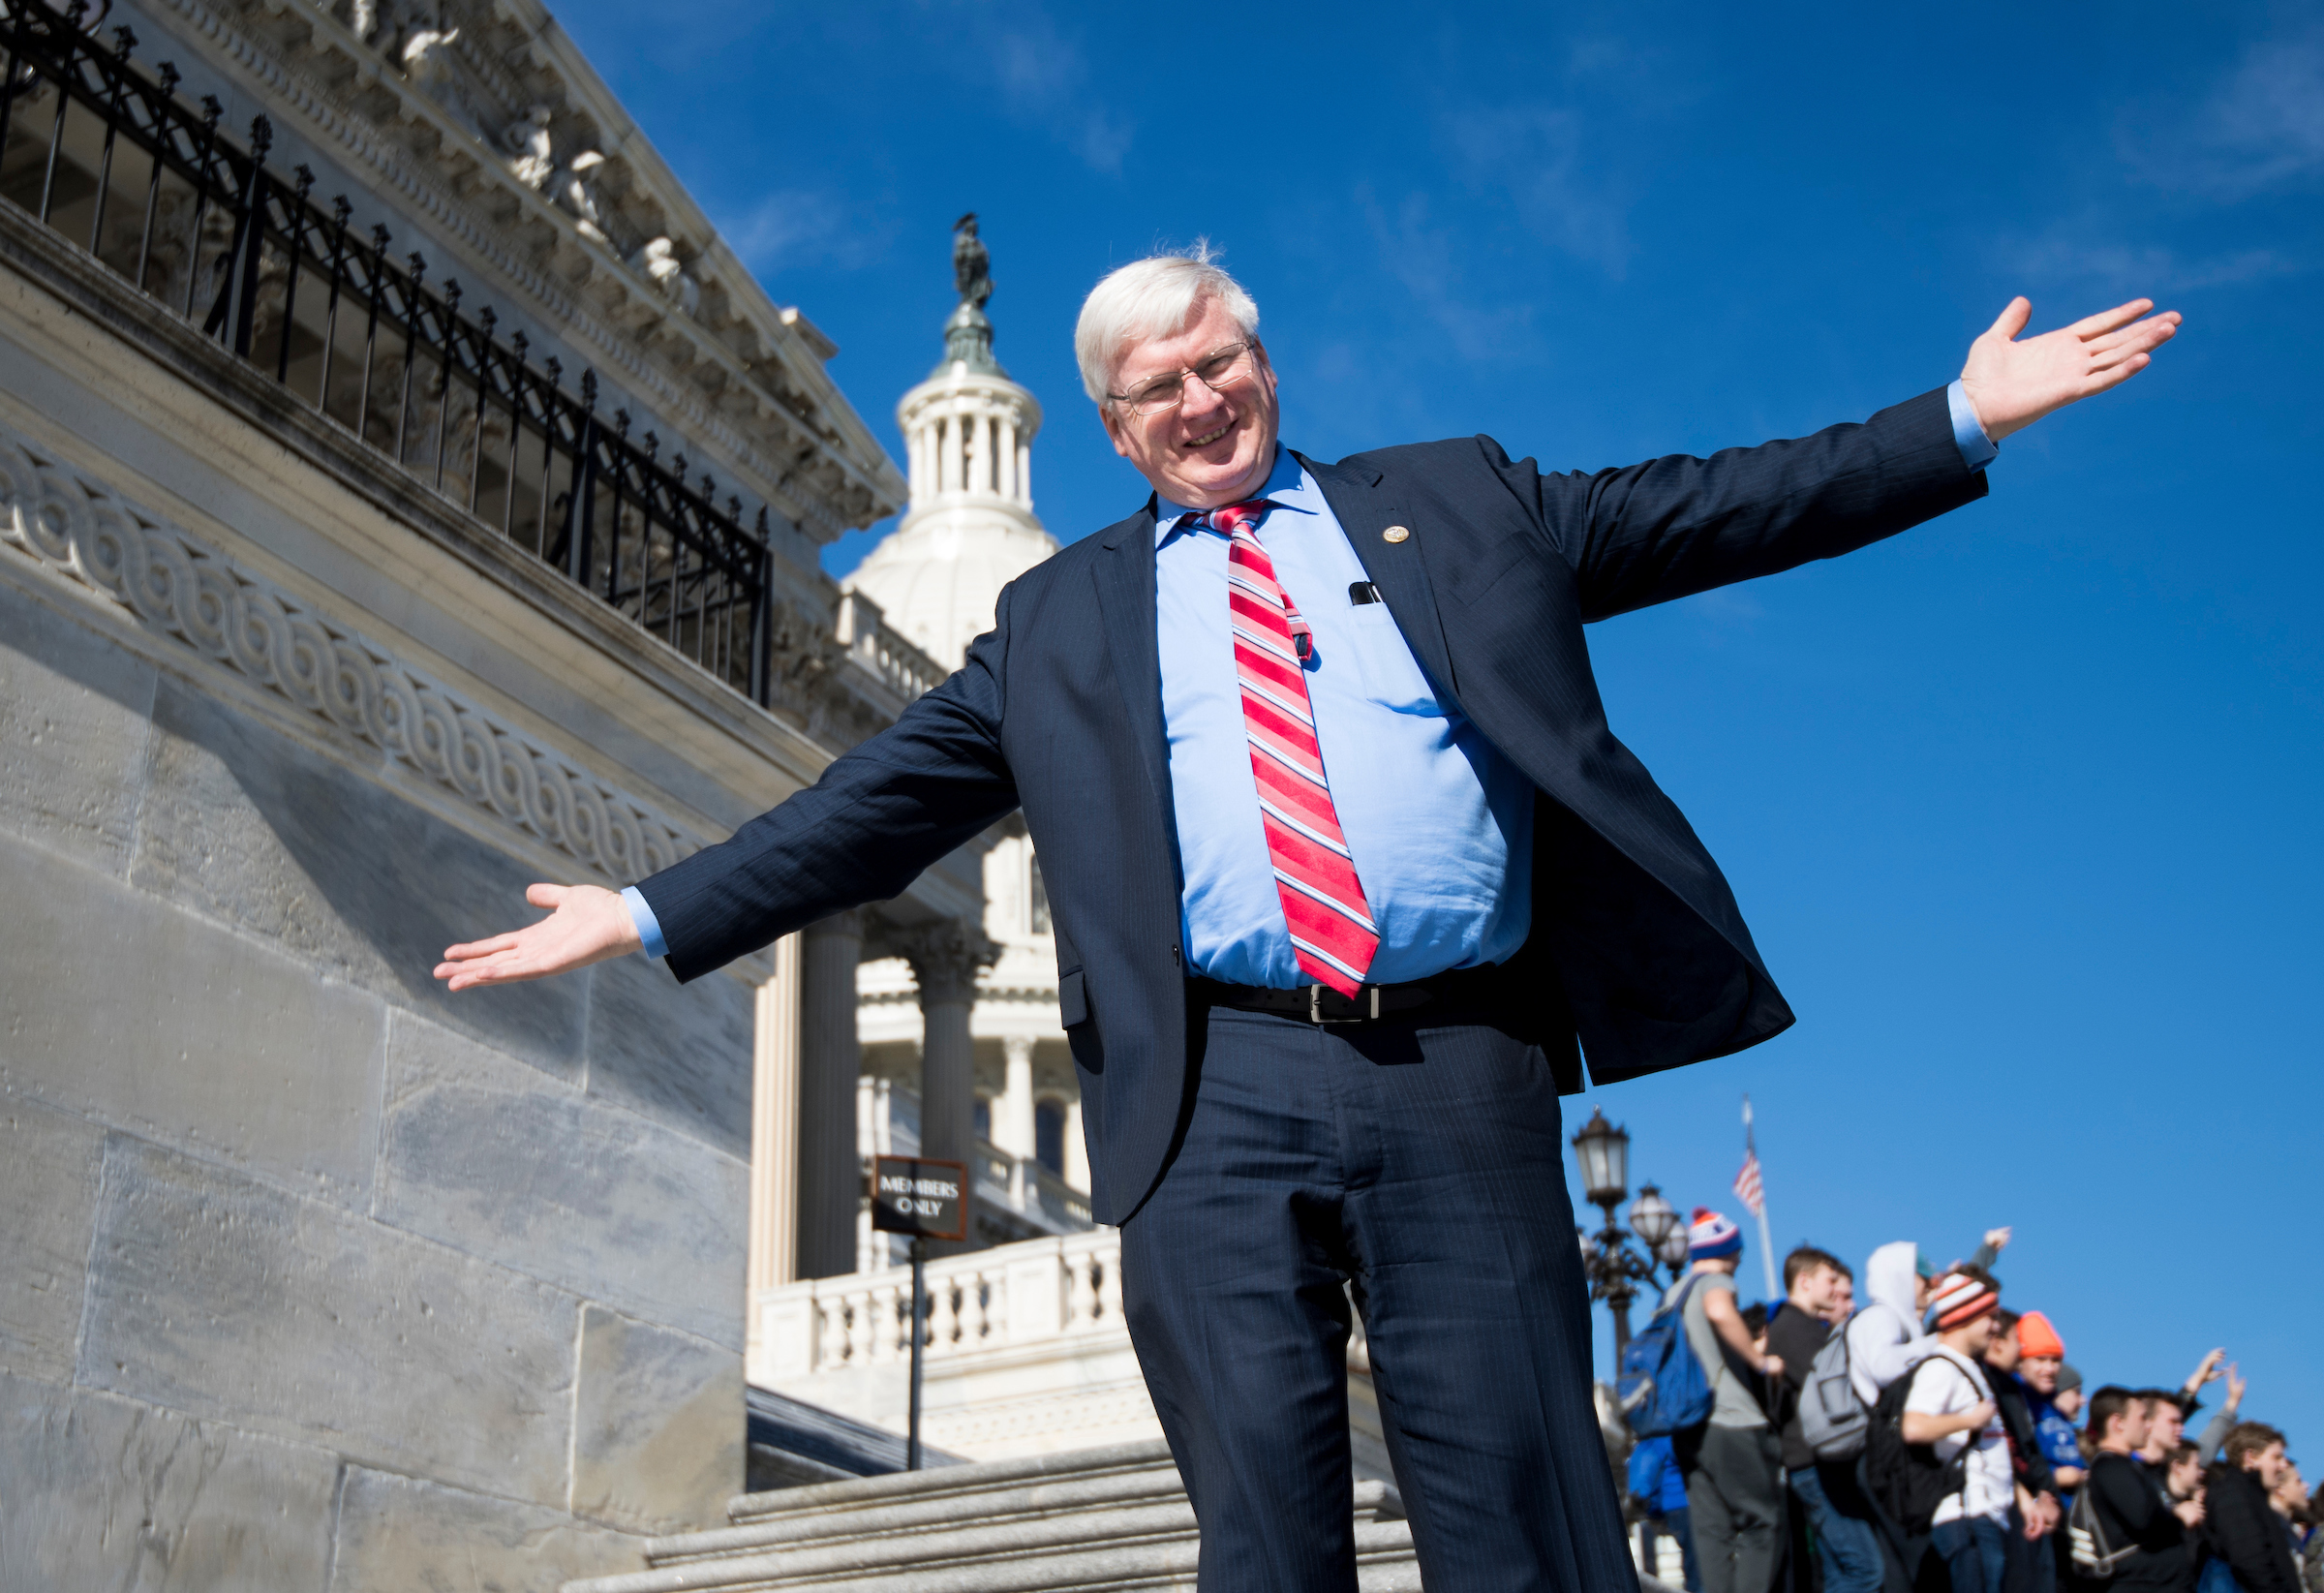 UNITED STATES - JANUARY 19: Rep. Glenn Grothman, R-Wisc., walks down the House steps following the final scheduled votes of the week on Friday, Jan. 19, 2018. House members were told to stay flexible on their schedule as efforts to avoid a government shutdown continued in Washington. (Photo By Bill Clark/CQ Roll Call)